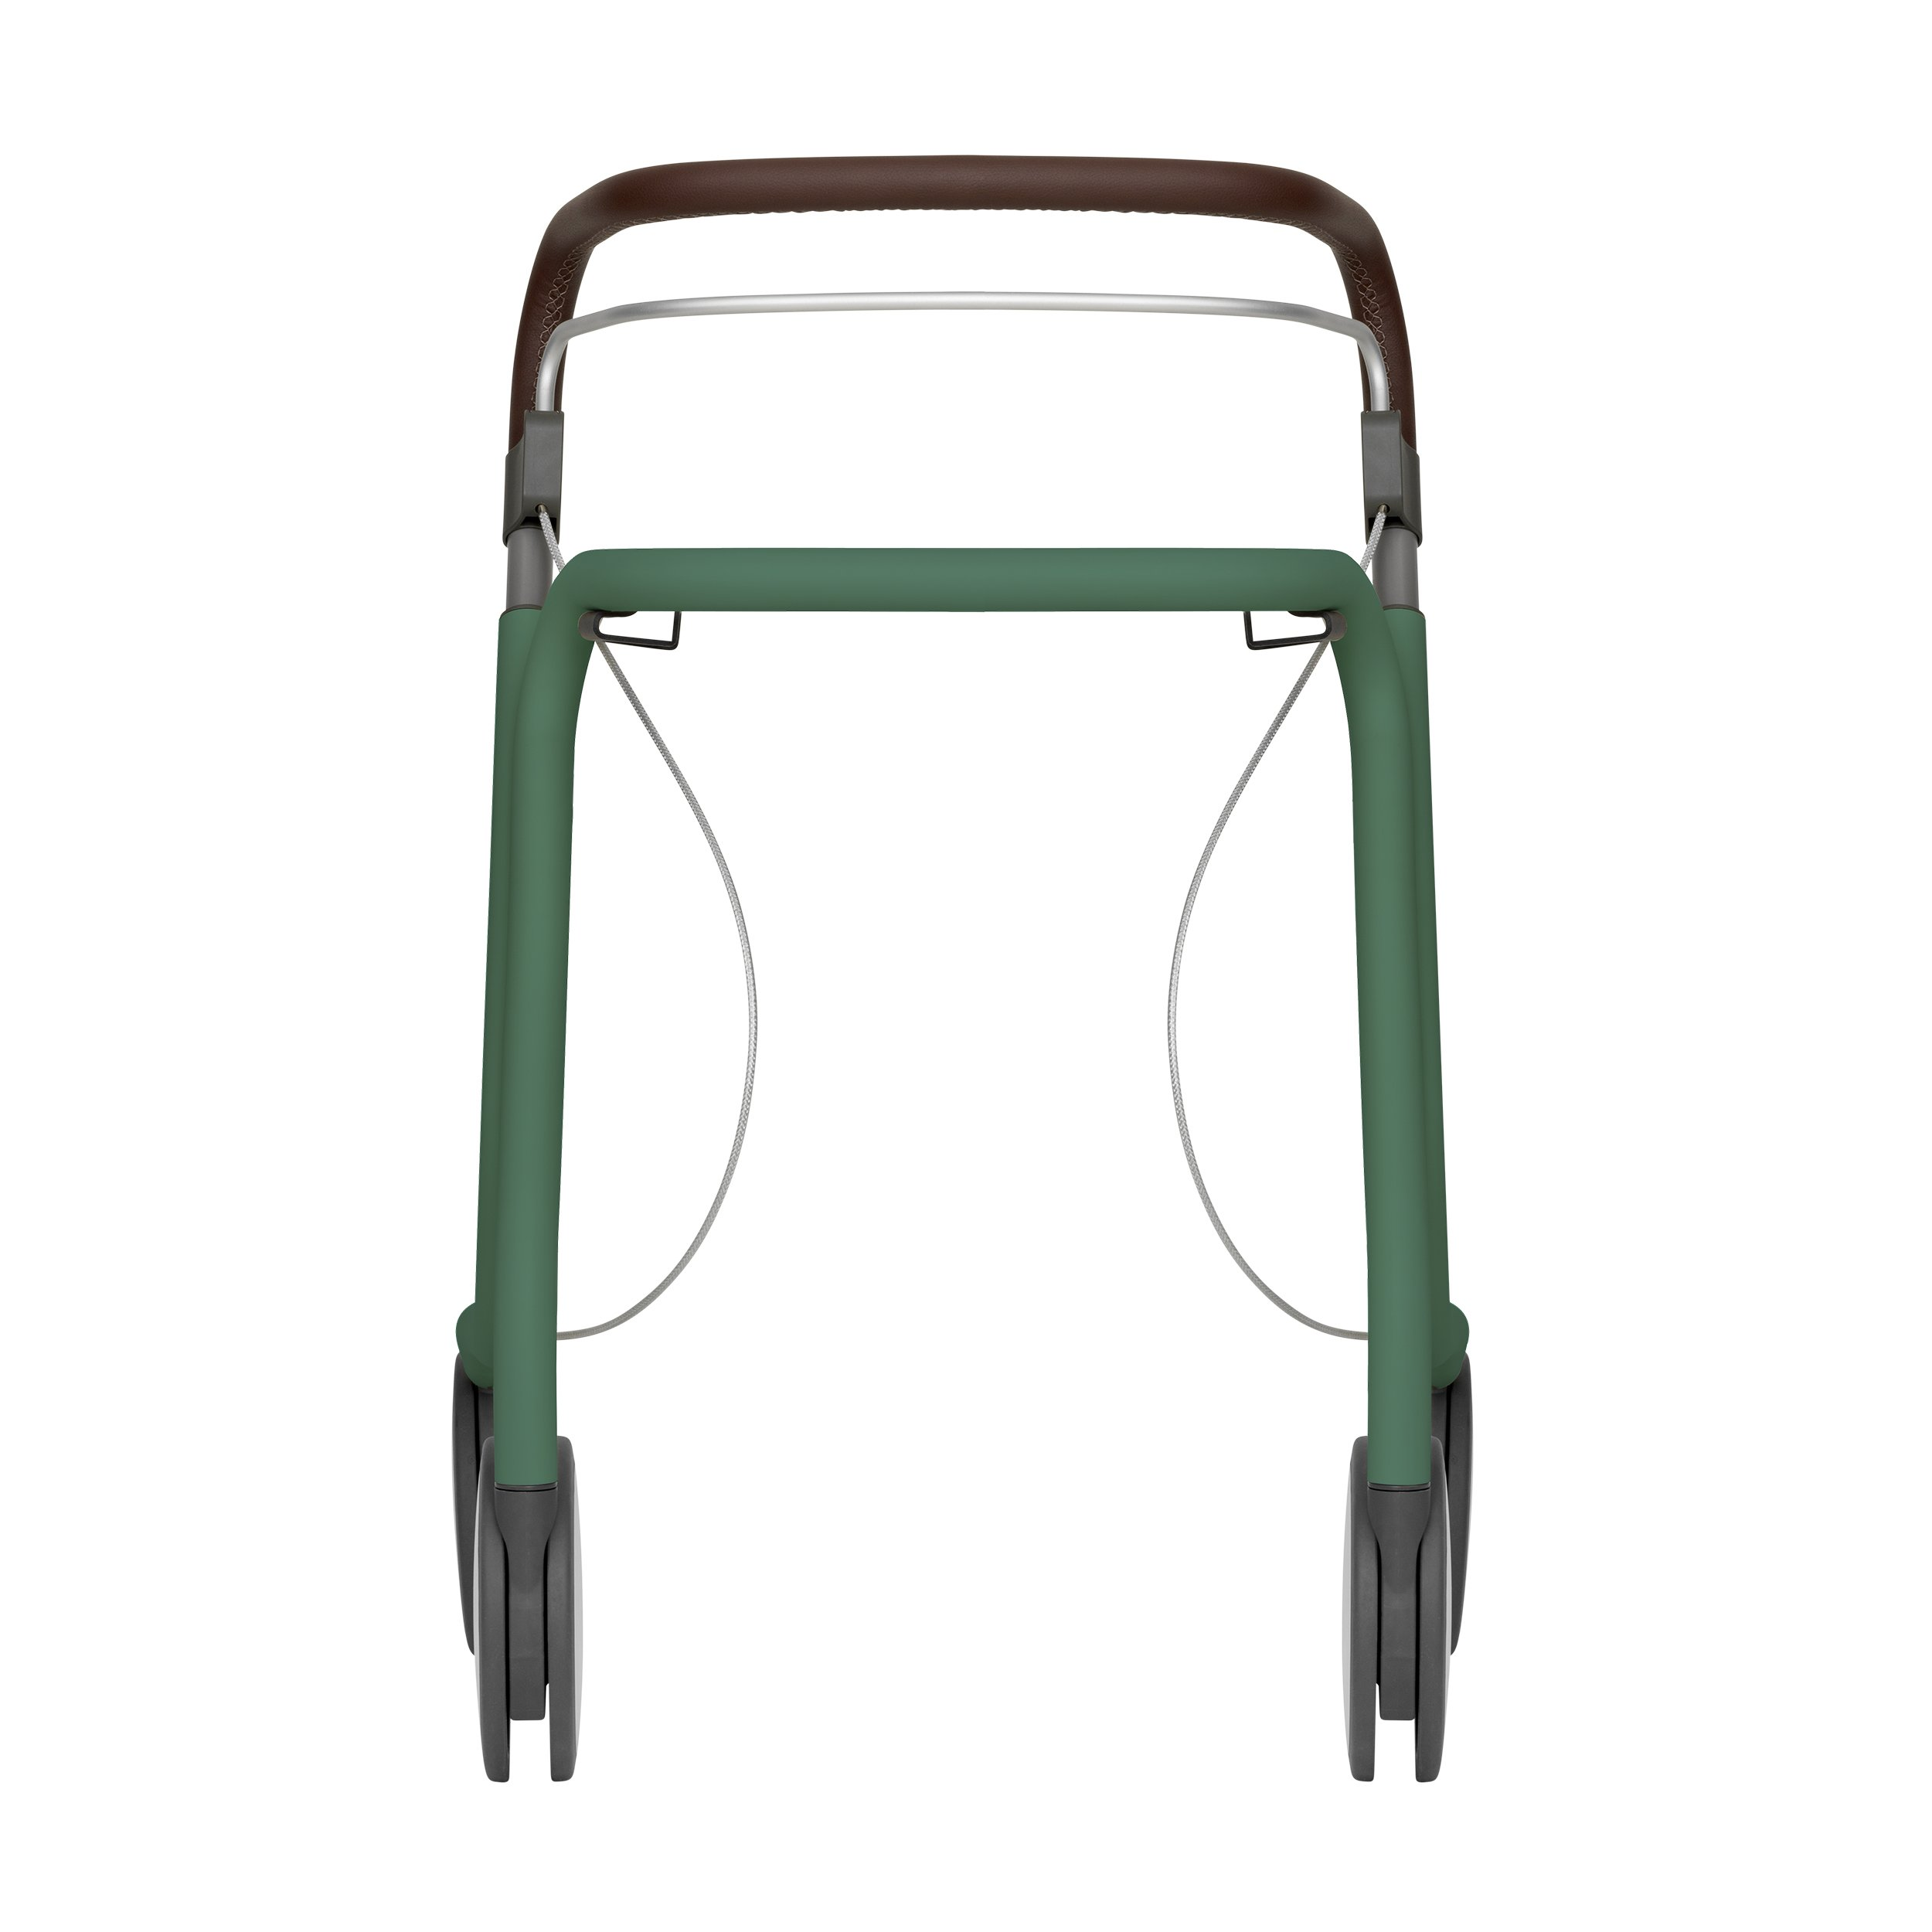 Scandinavian Butler rollator in Patina Green - seen from the front